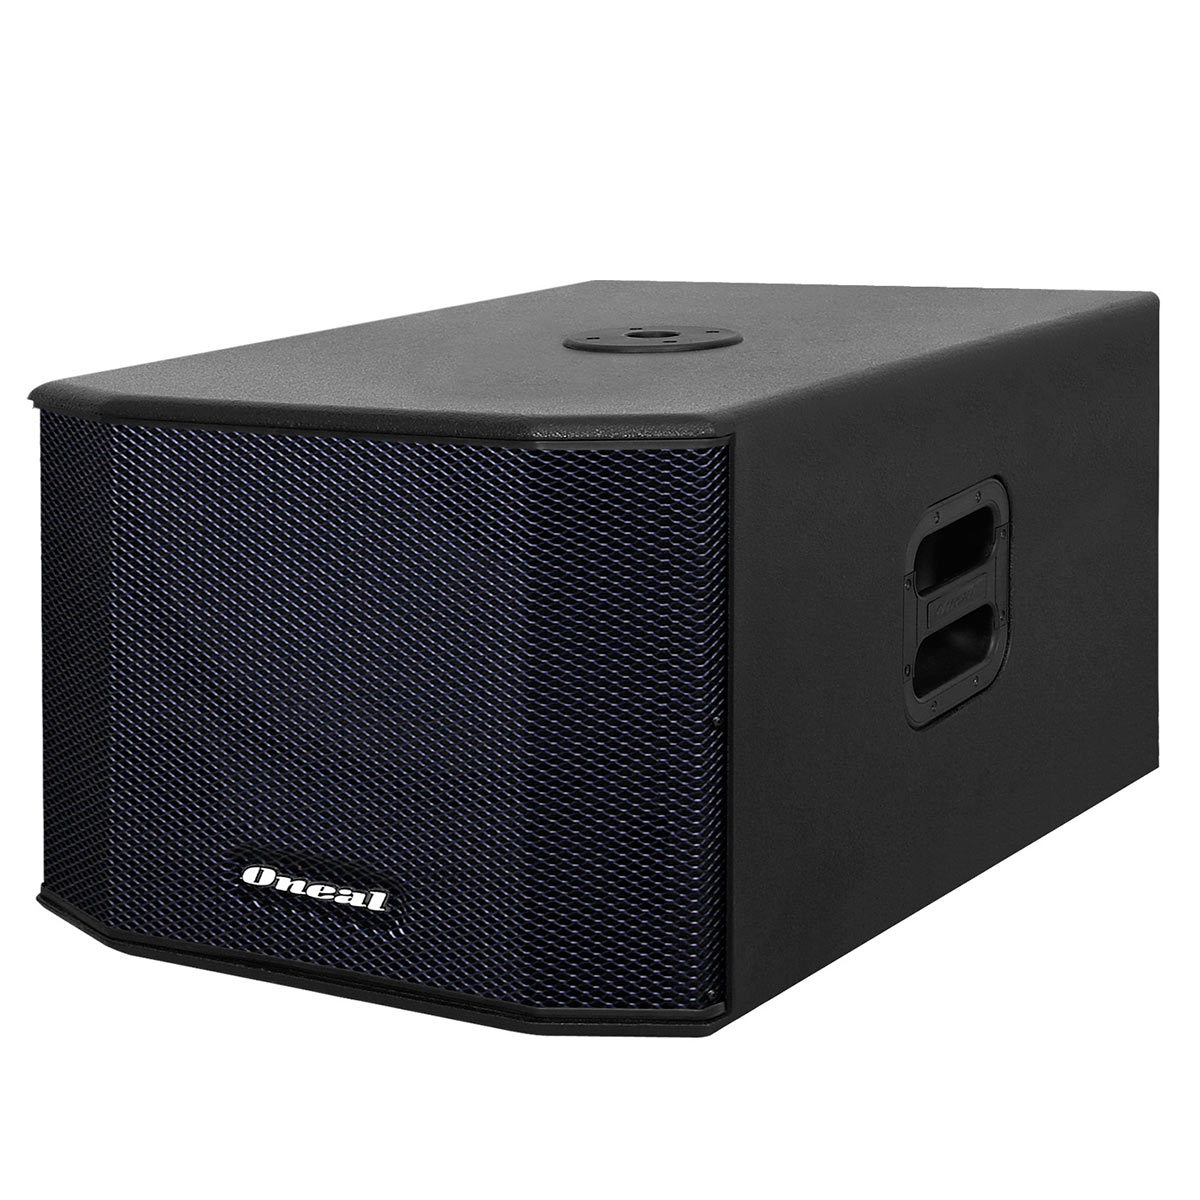 OBSB2400 - Subwoofer Passivo 450W OBSB 2400 - Oneal